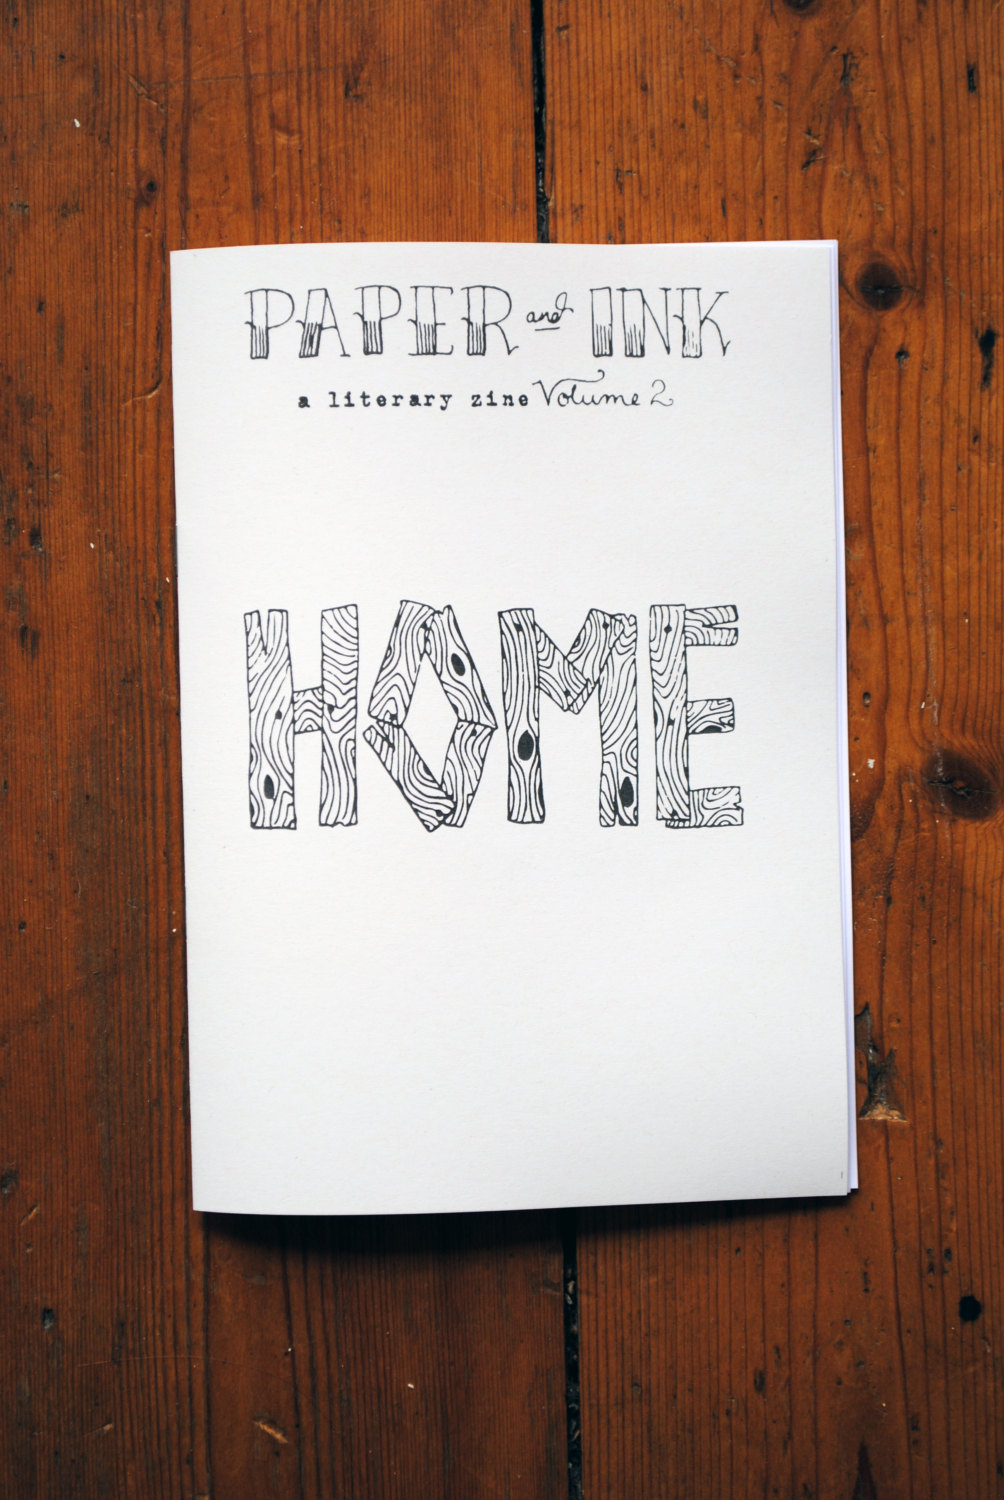 https://www.etsy.com/listing/190455731/paper-and-ink-a-literary-zine-issue-2